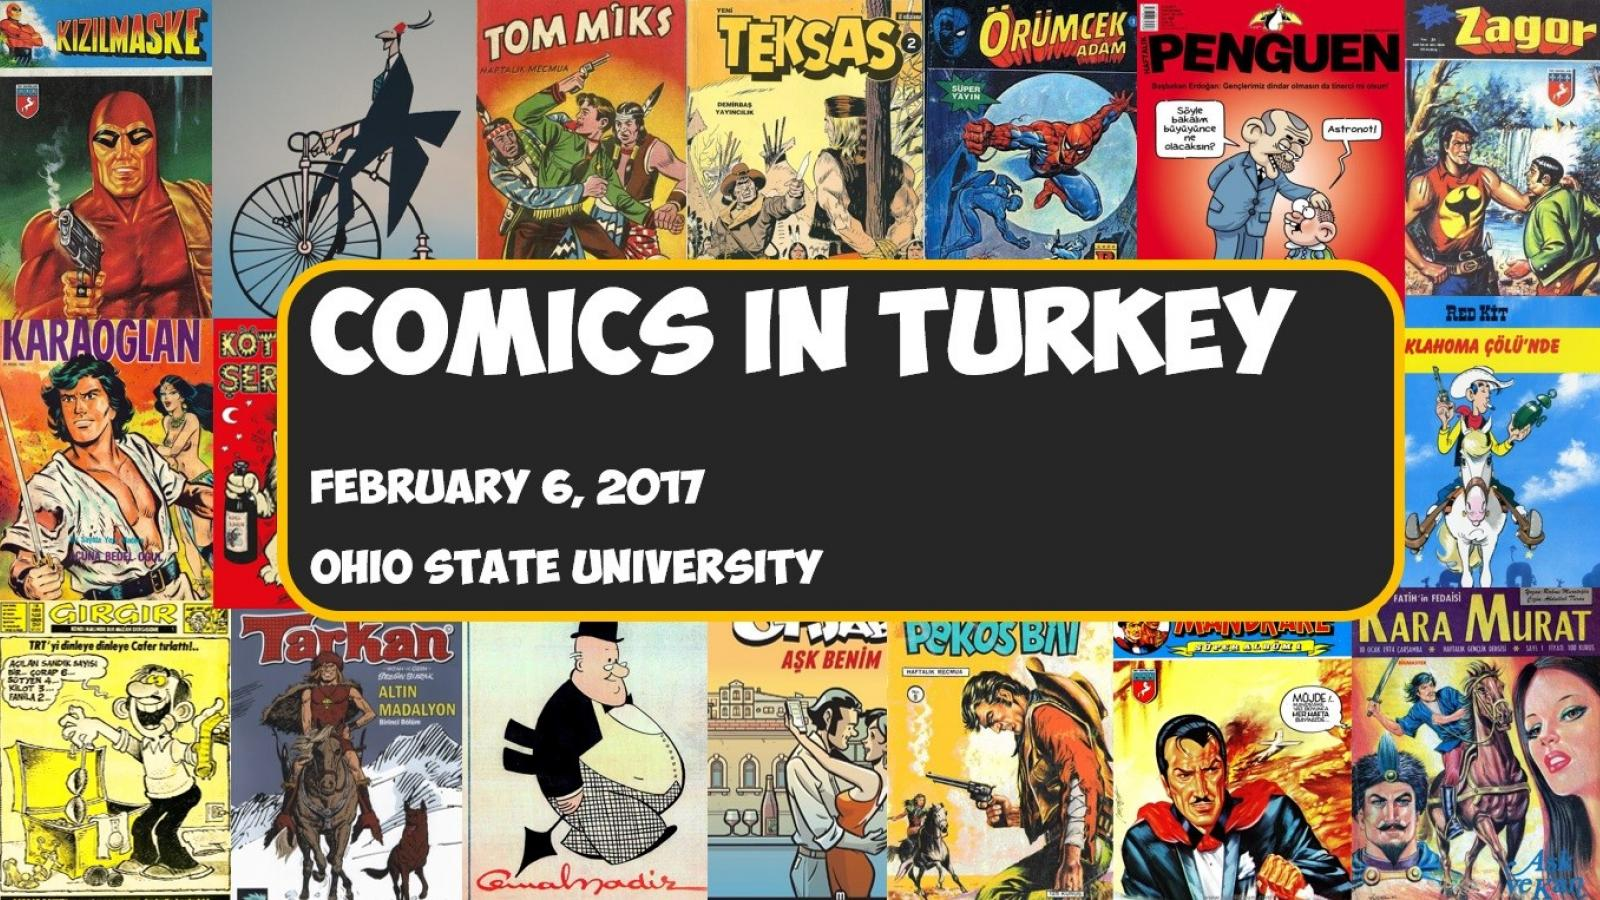 Image of Comics in Turkey